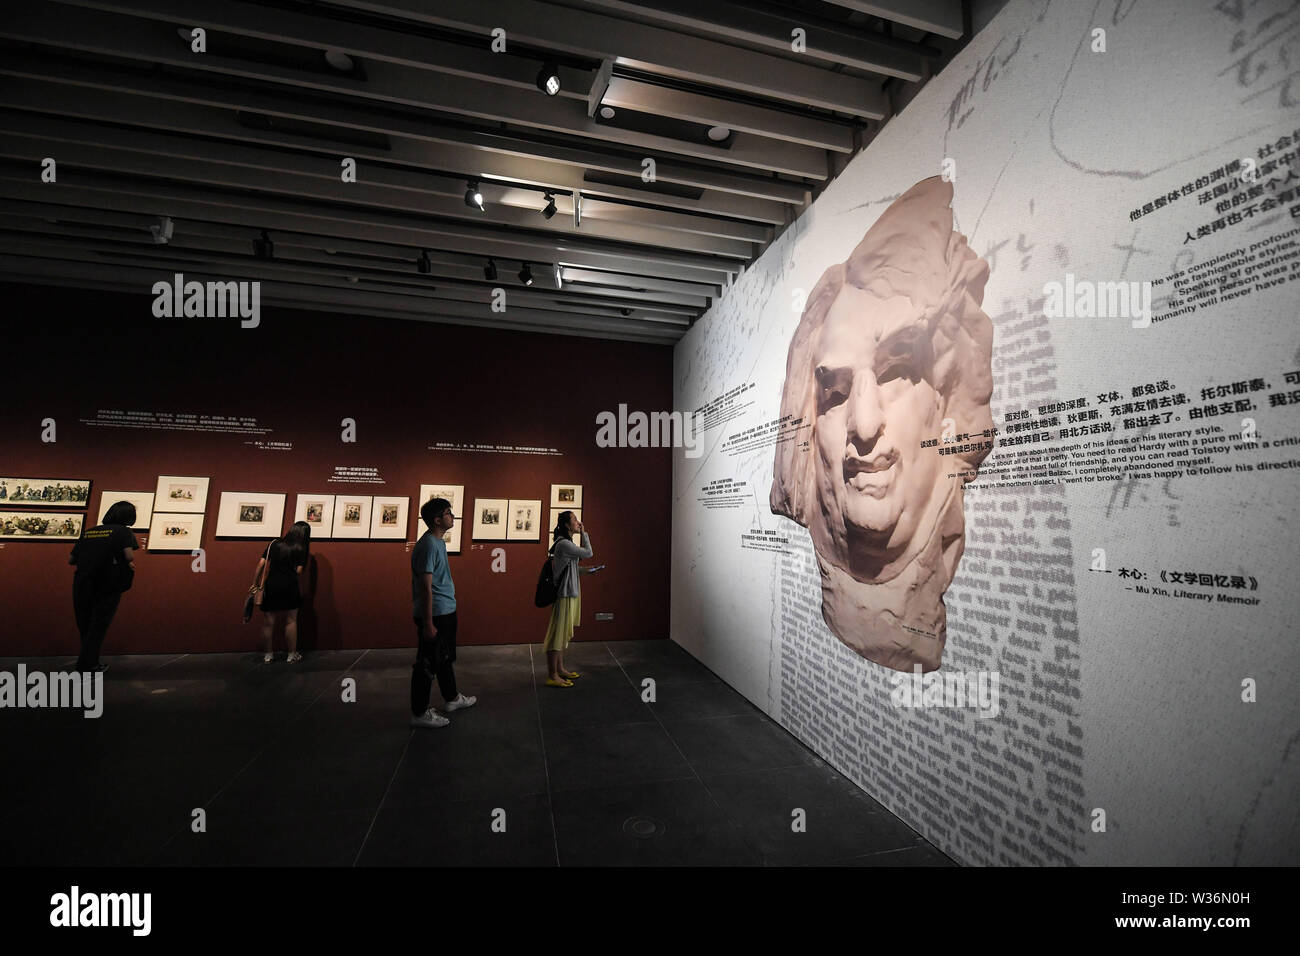 Wuzhen, China's Zhejiang Province. 13th July, 2019. People visit an exhibition that commemorates well-known French writer Honore de Balzac held at Muxin Art Museum in the Wuzhen scenic area of Tongxiang, east China's Zhejiang Province, July 13, 2019. More than 100 exhibits are on display during the exhibition that runs from July 13 to Oct. 31. Credit: Xu Yu/Xinhua/Alamy Live News - Stock Image